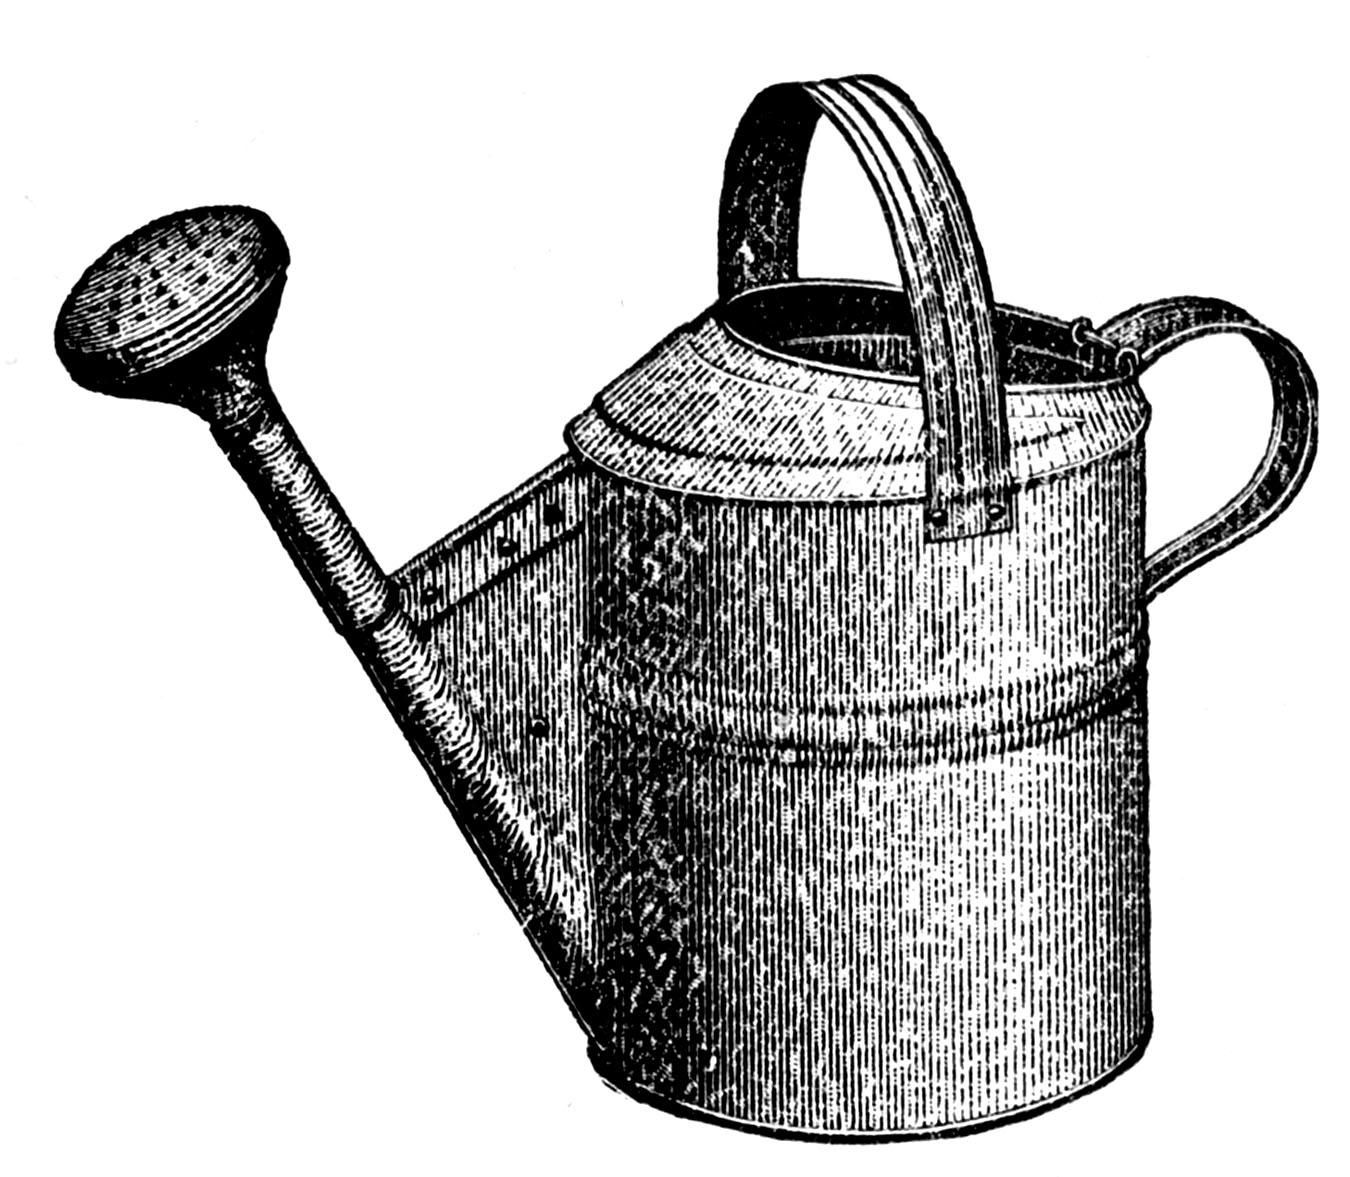 Watering tool clipart clip art black and white library 8 Garden Tools Clip Art - Updated! - The Graphics Fairy clip art black and white library